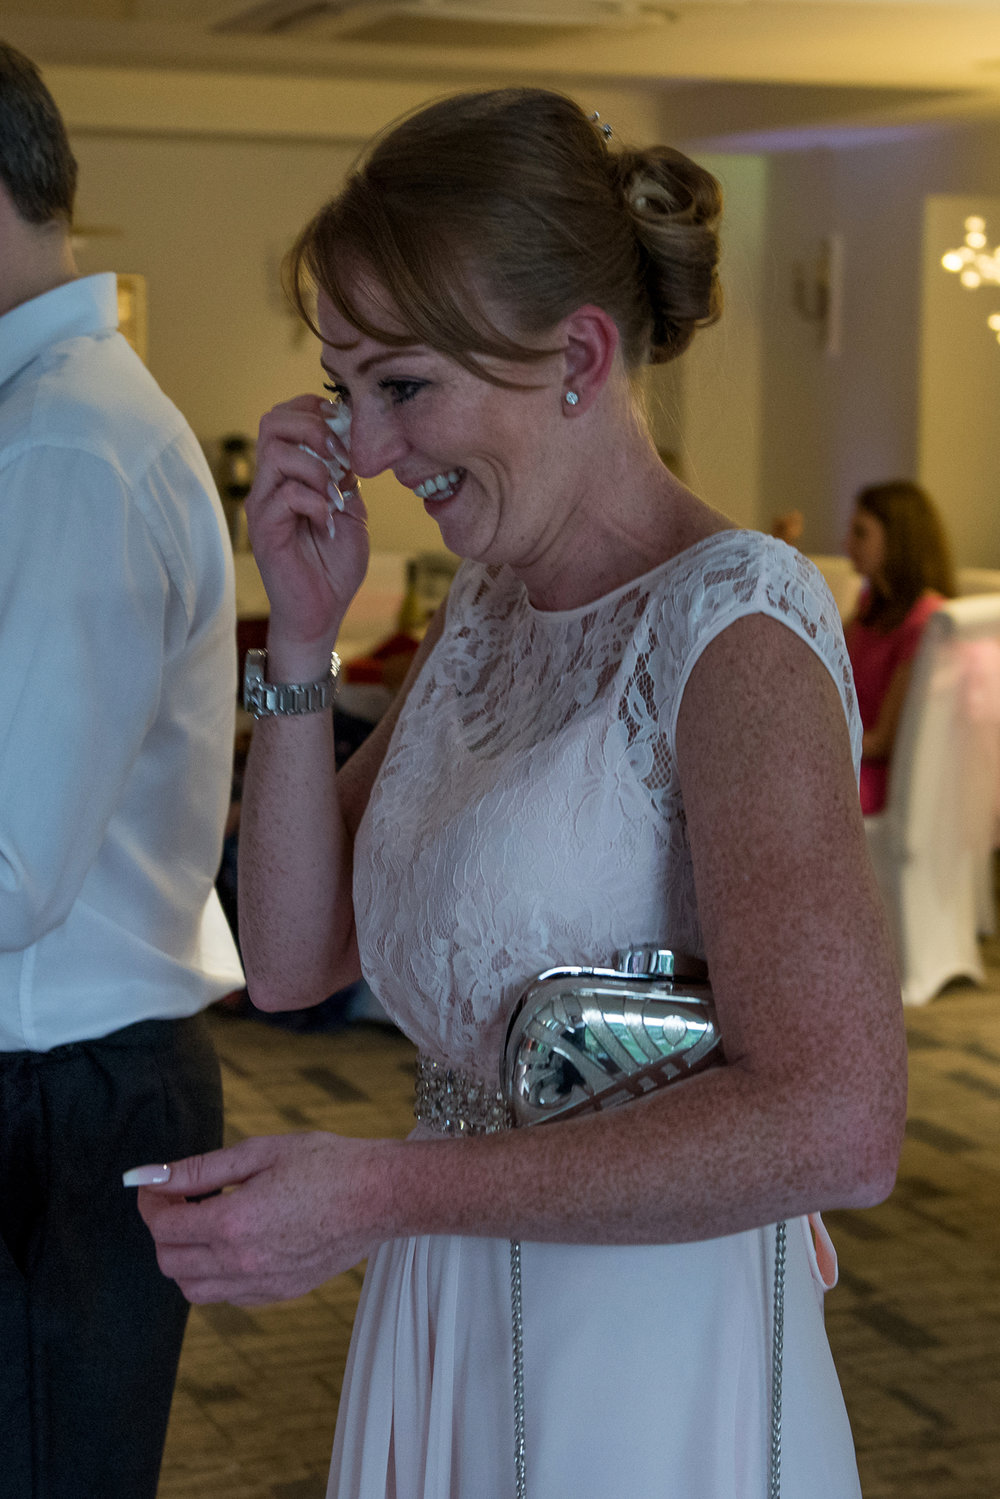 Frensham-Pond-Hotel-wedding_96.JPG